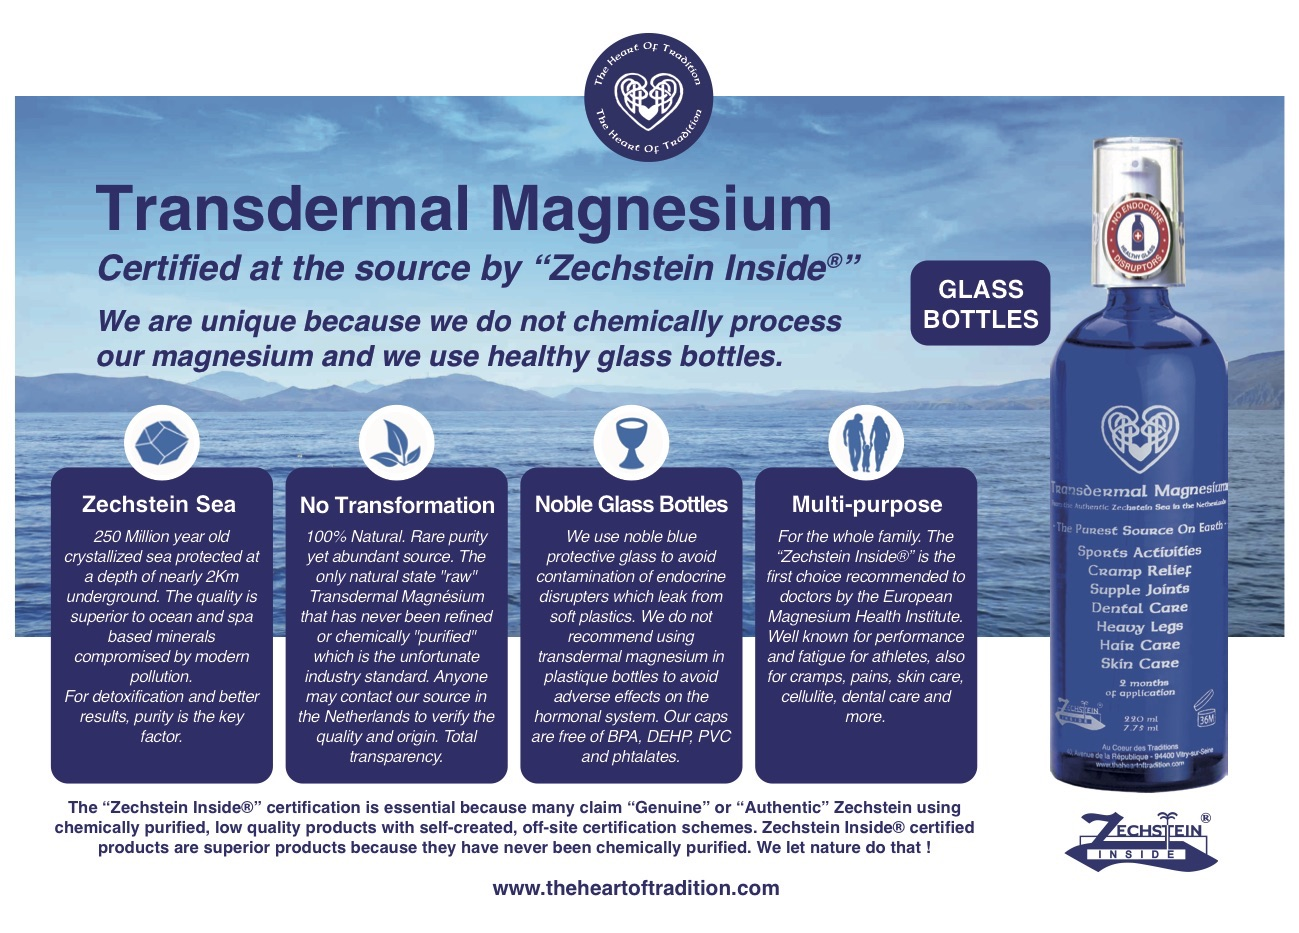 Transdermal Magnesium, Magnesium Oil - The Heart Of Tradition USA